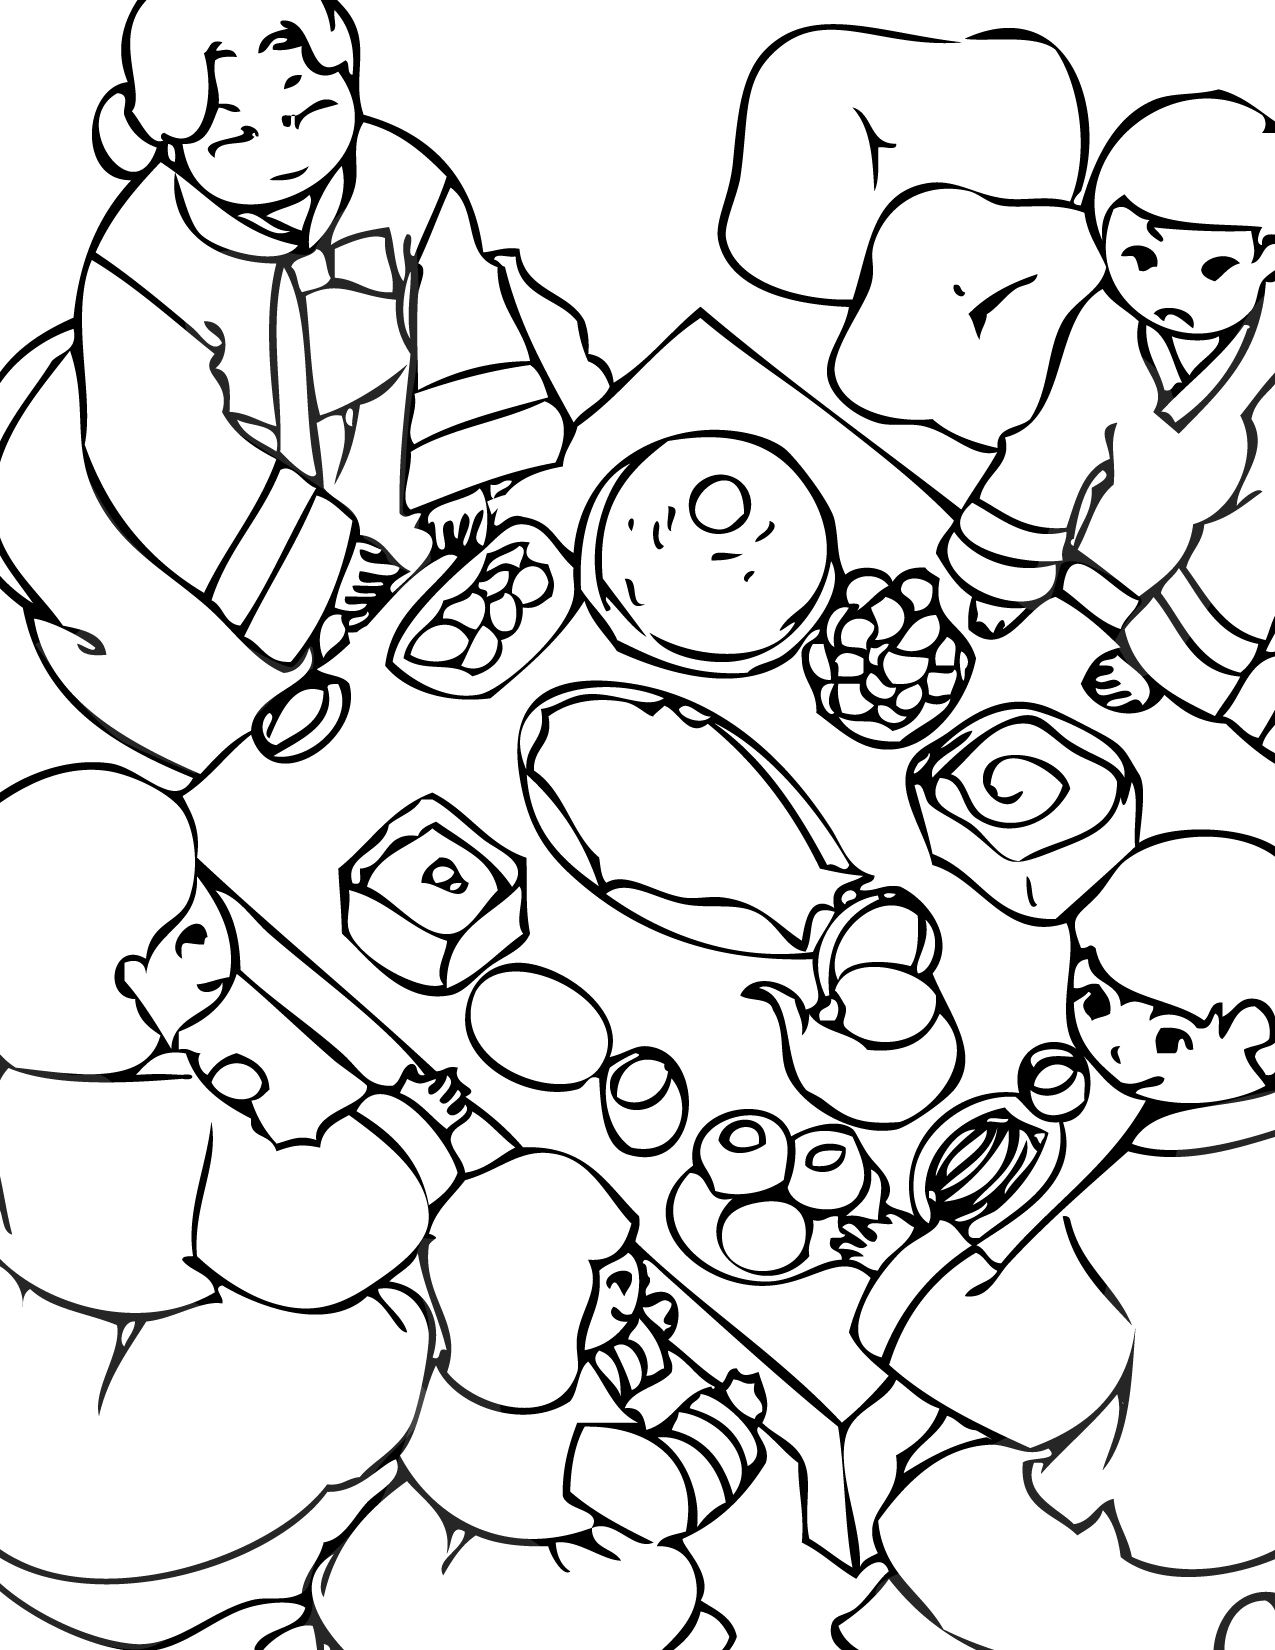 South korea coloring book - Korea Coloring Page Print This Page Korean Holidays Coloring Pages Coloring Pages